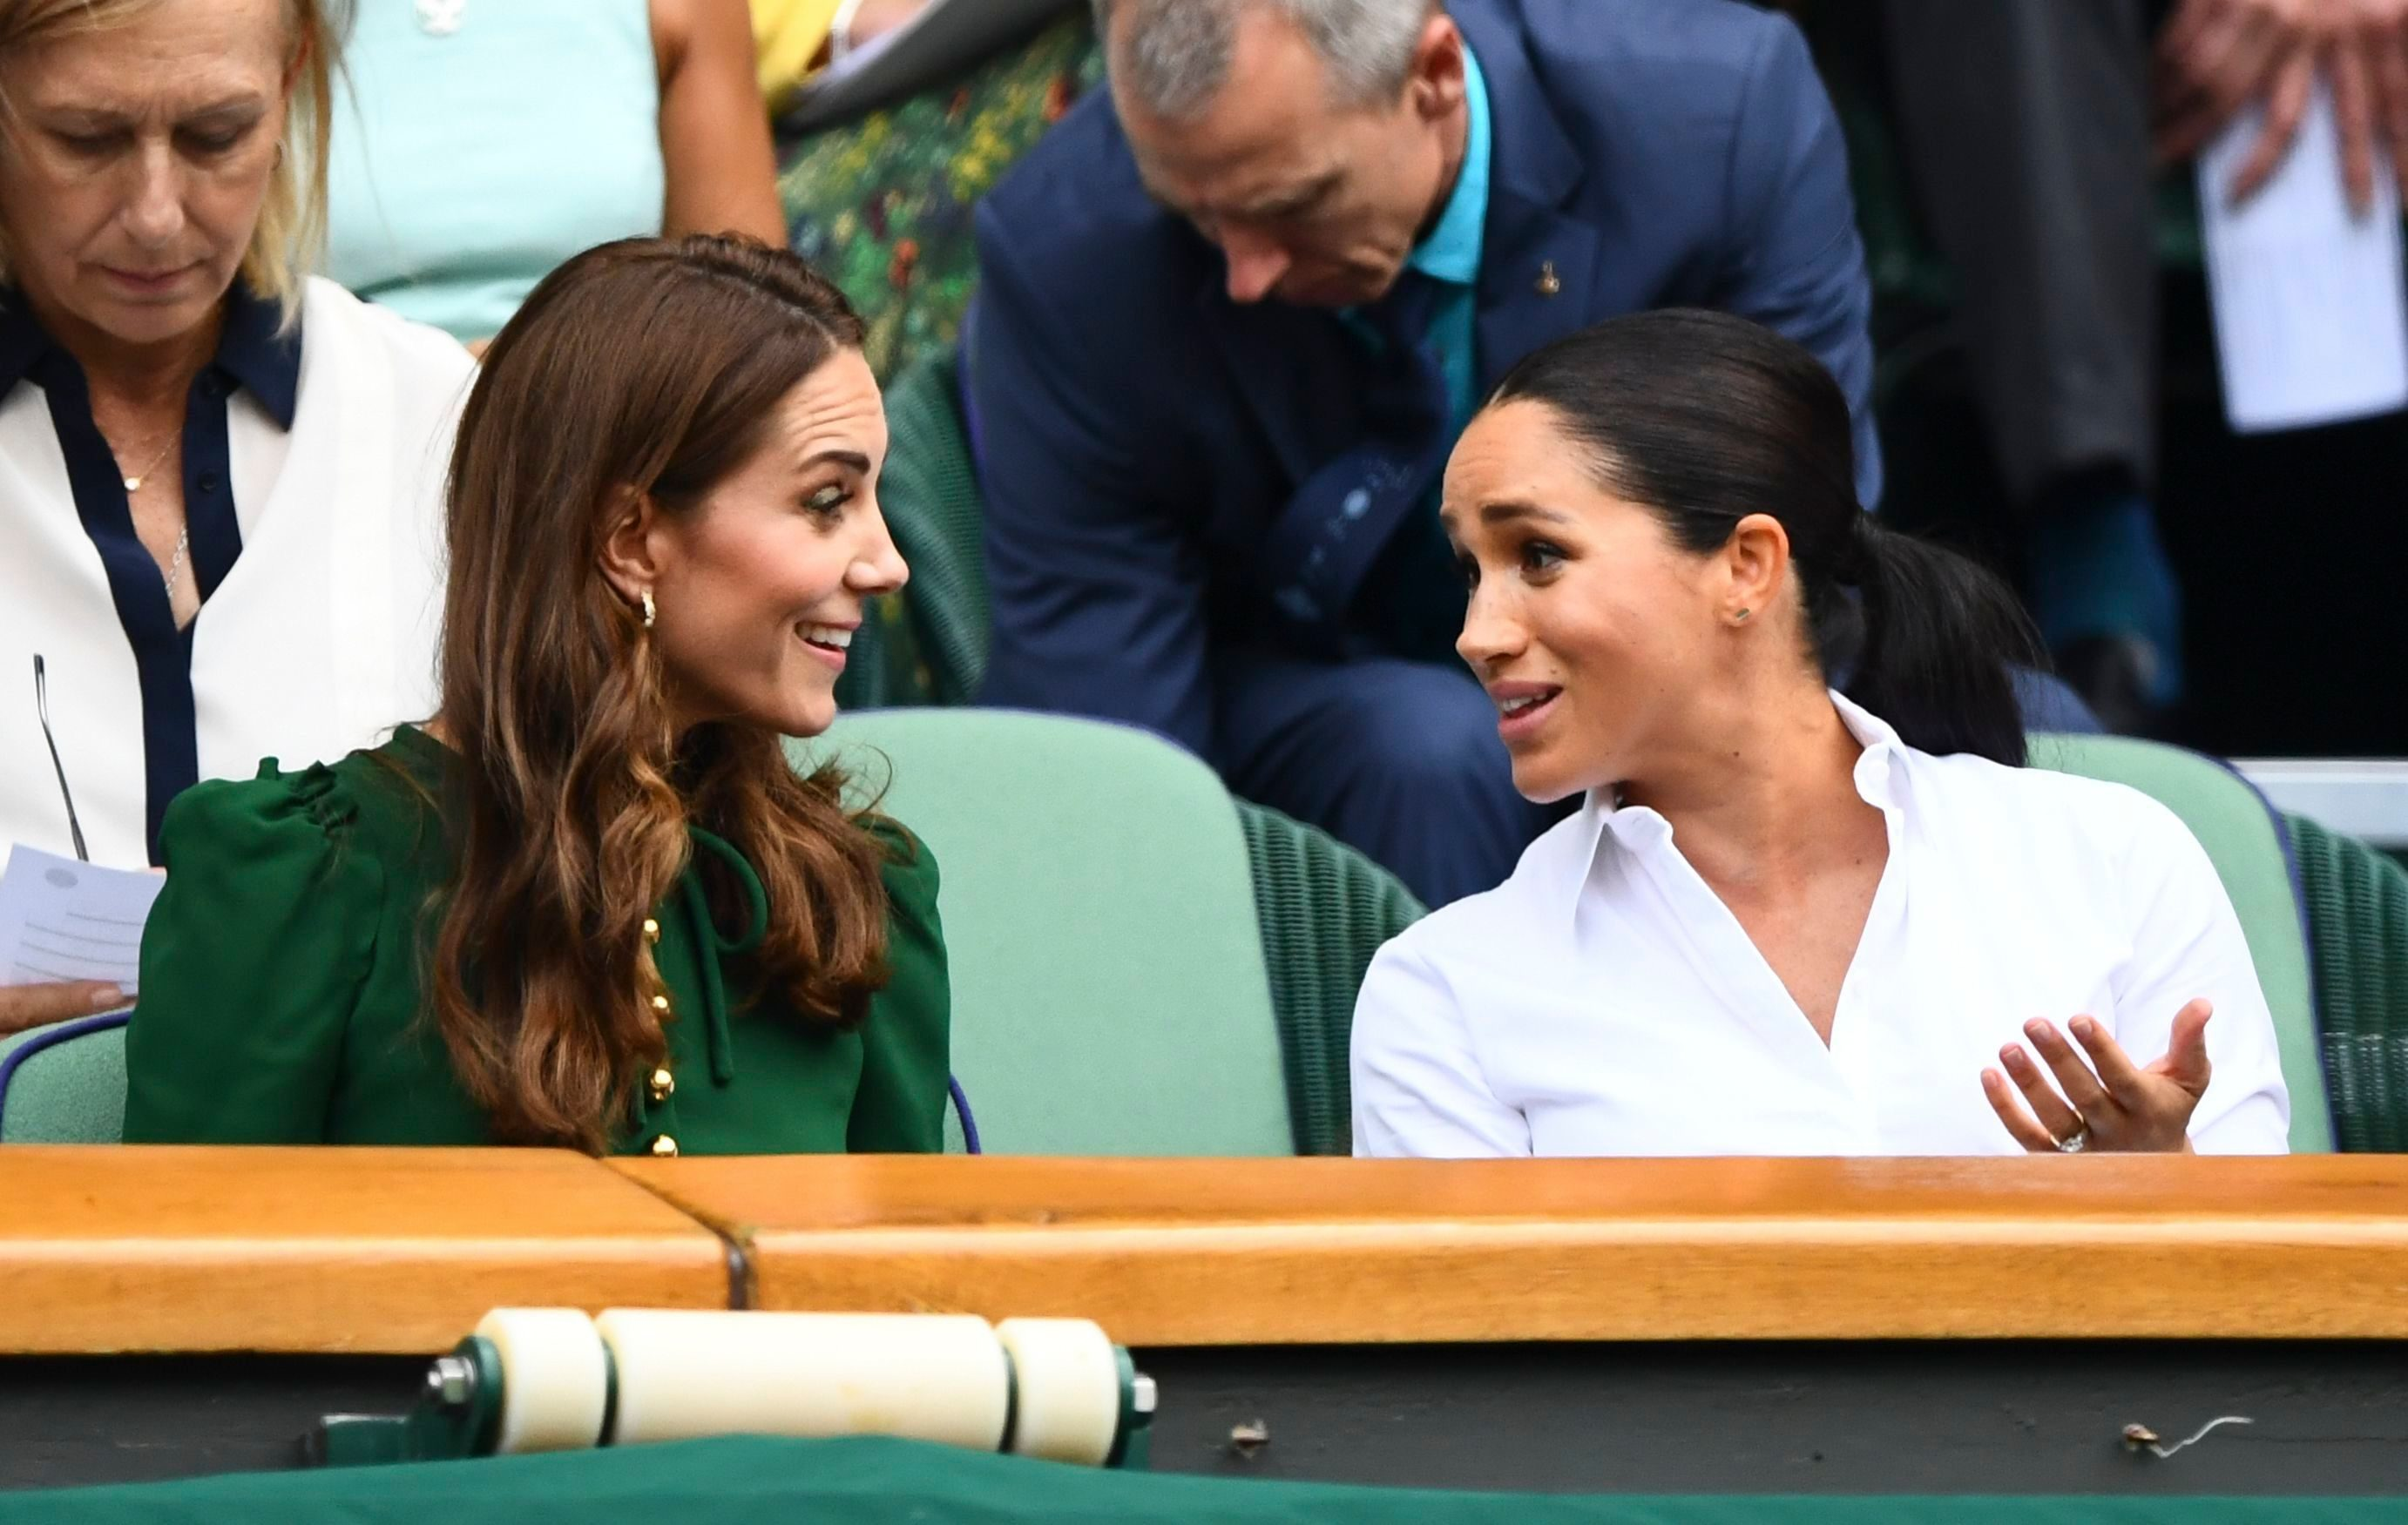 The 16 Most Talked About Royals Photos of 2019